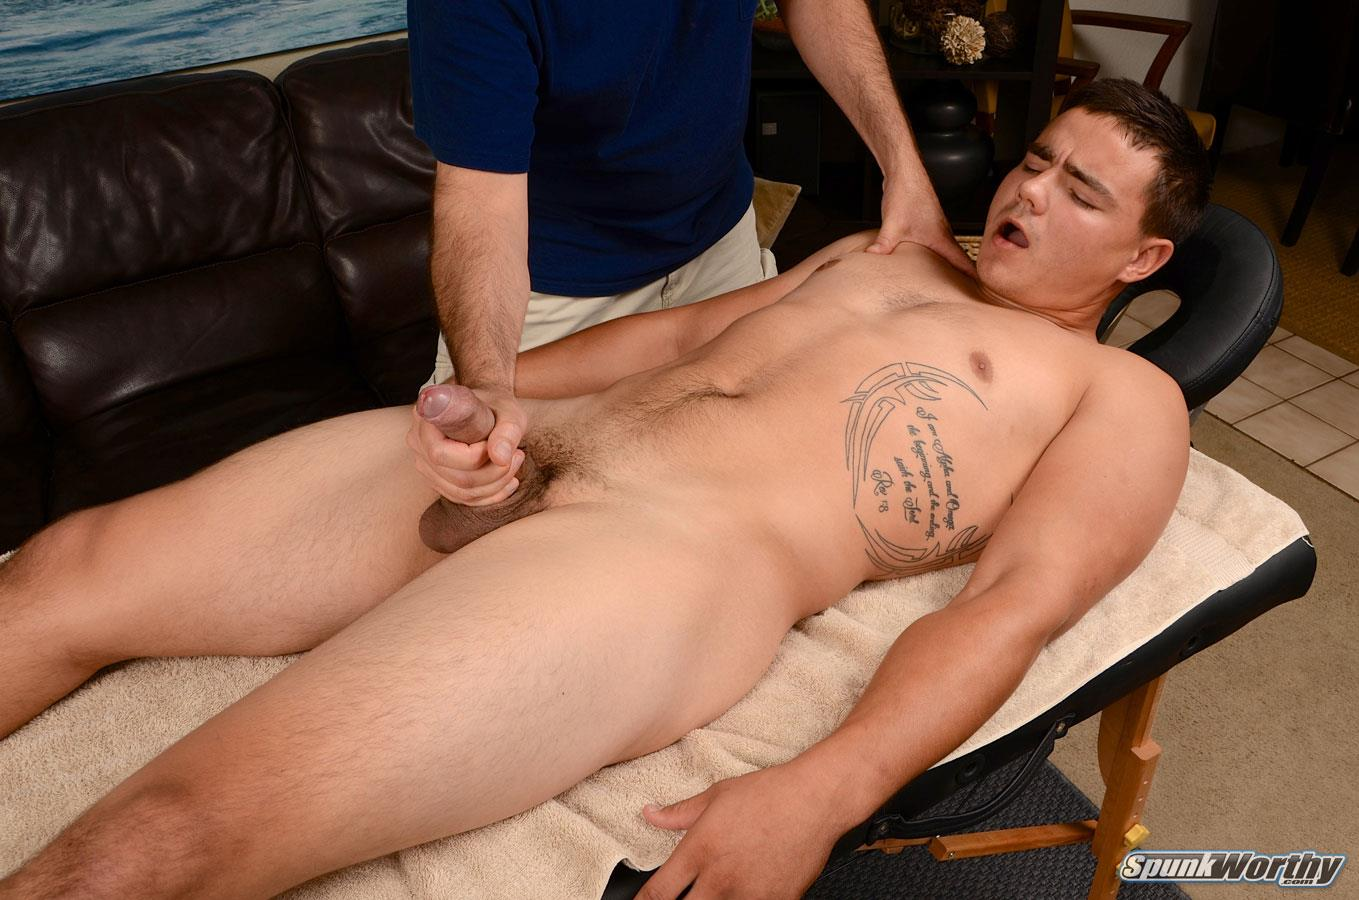 GAY MASSAGE VIDEOS BLOG WARNING: ADULT CONTENT Do